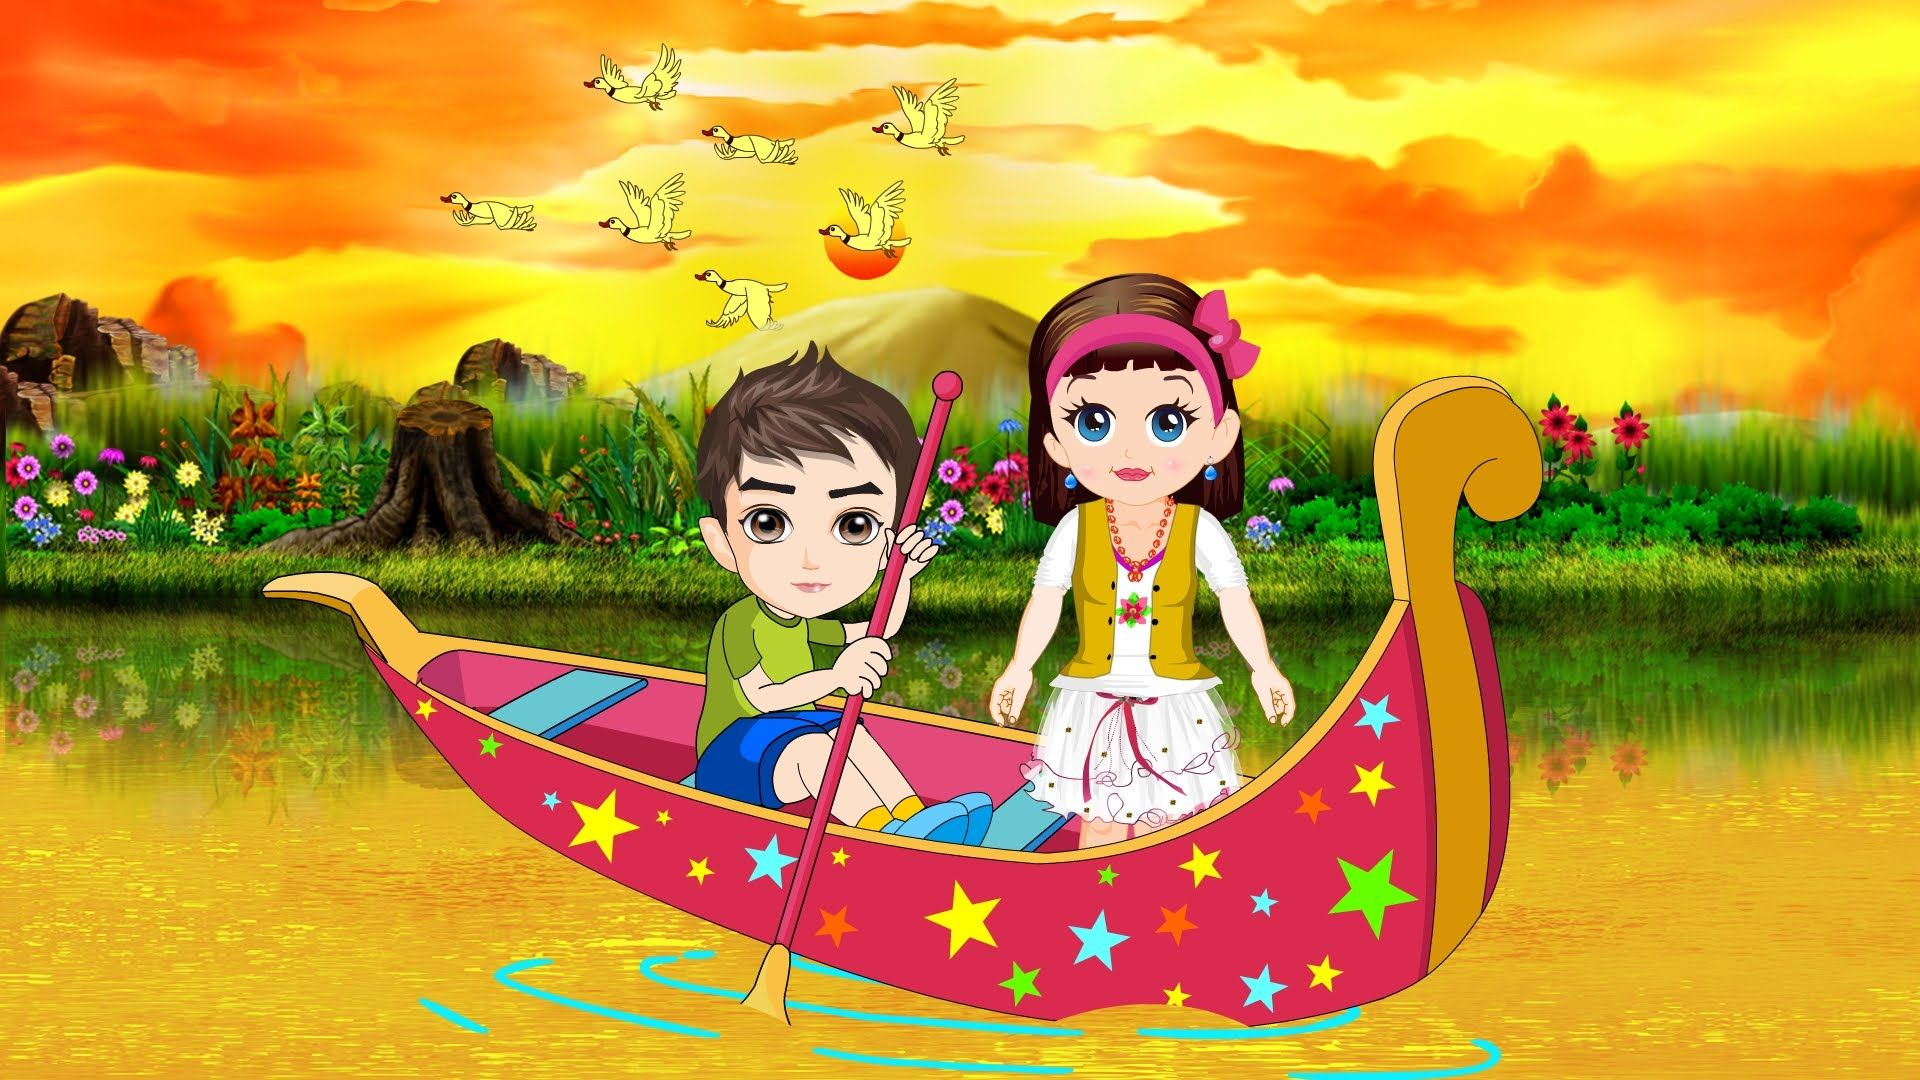 Row Row Your Boat - Nursery Rhymes - Children Songs - Learning Songs ...